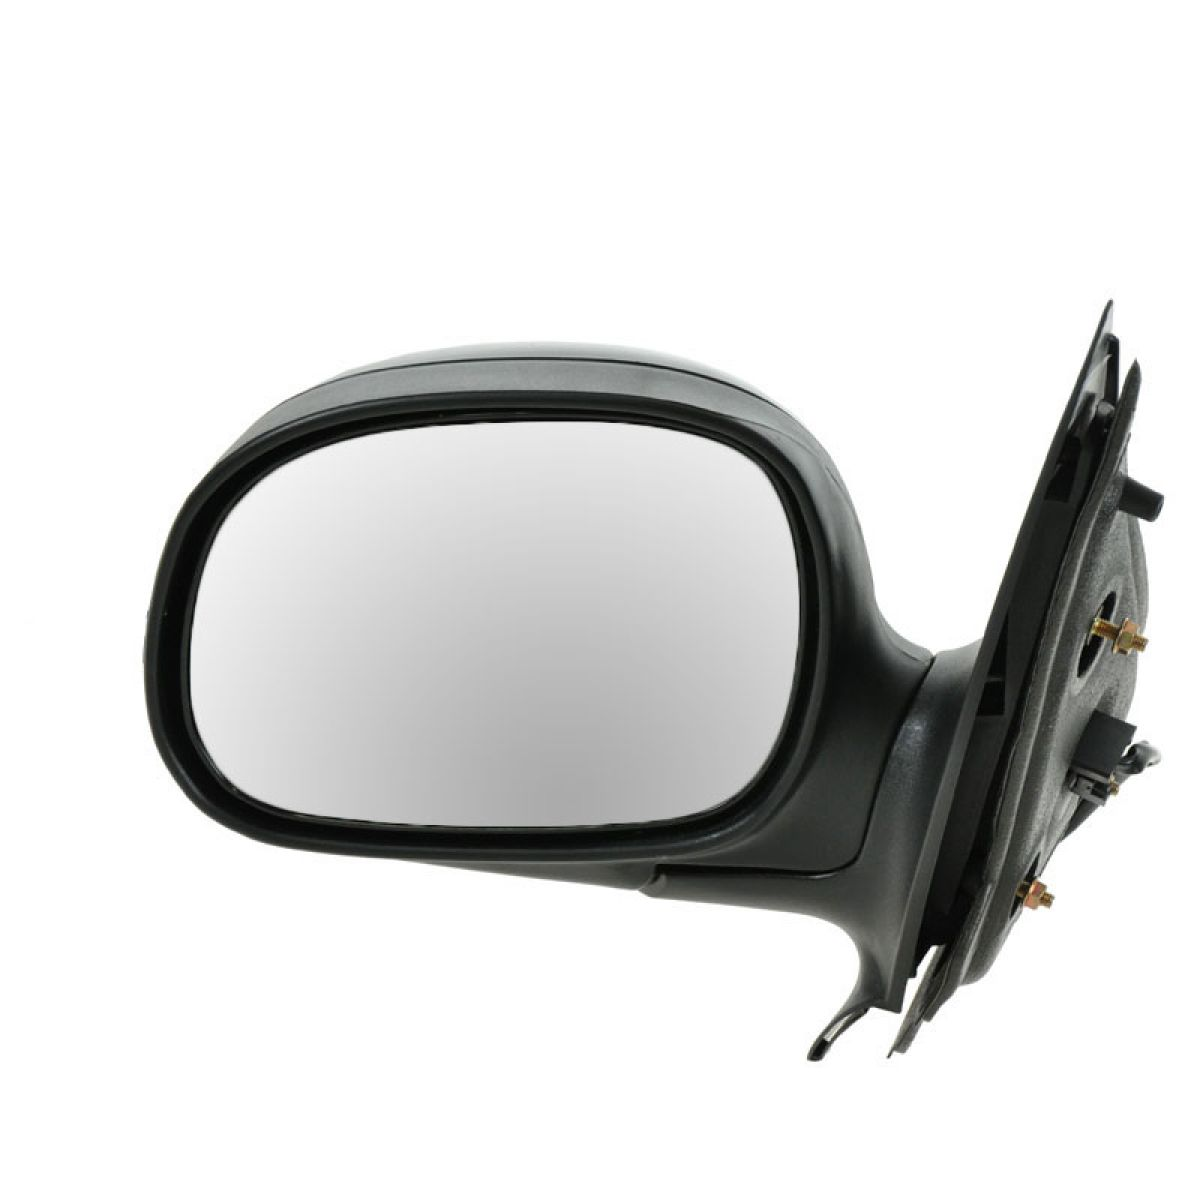 98-03 Ford Expedition Passenger Side Mirror Replacement